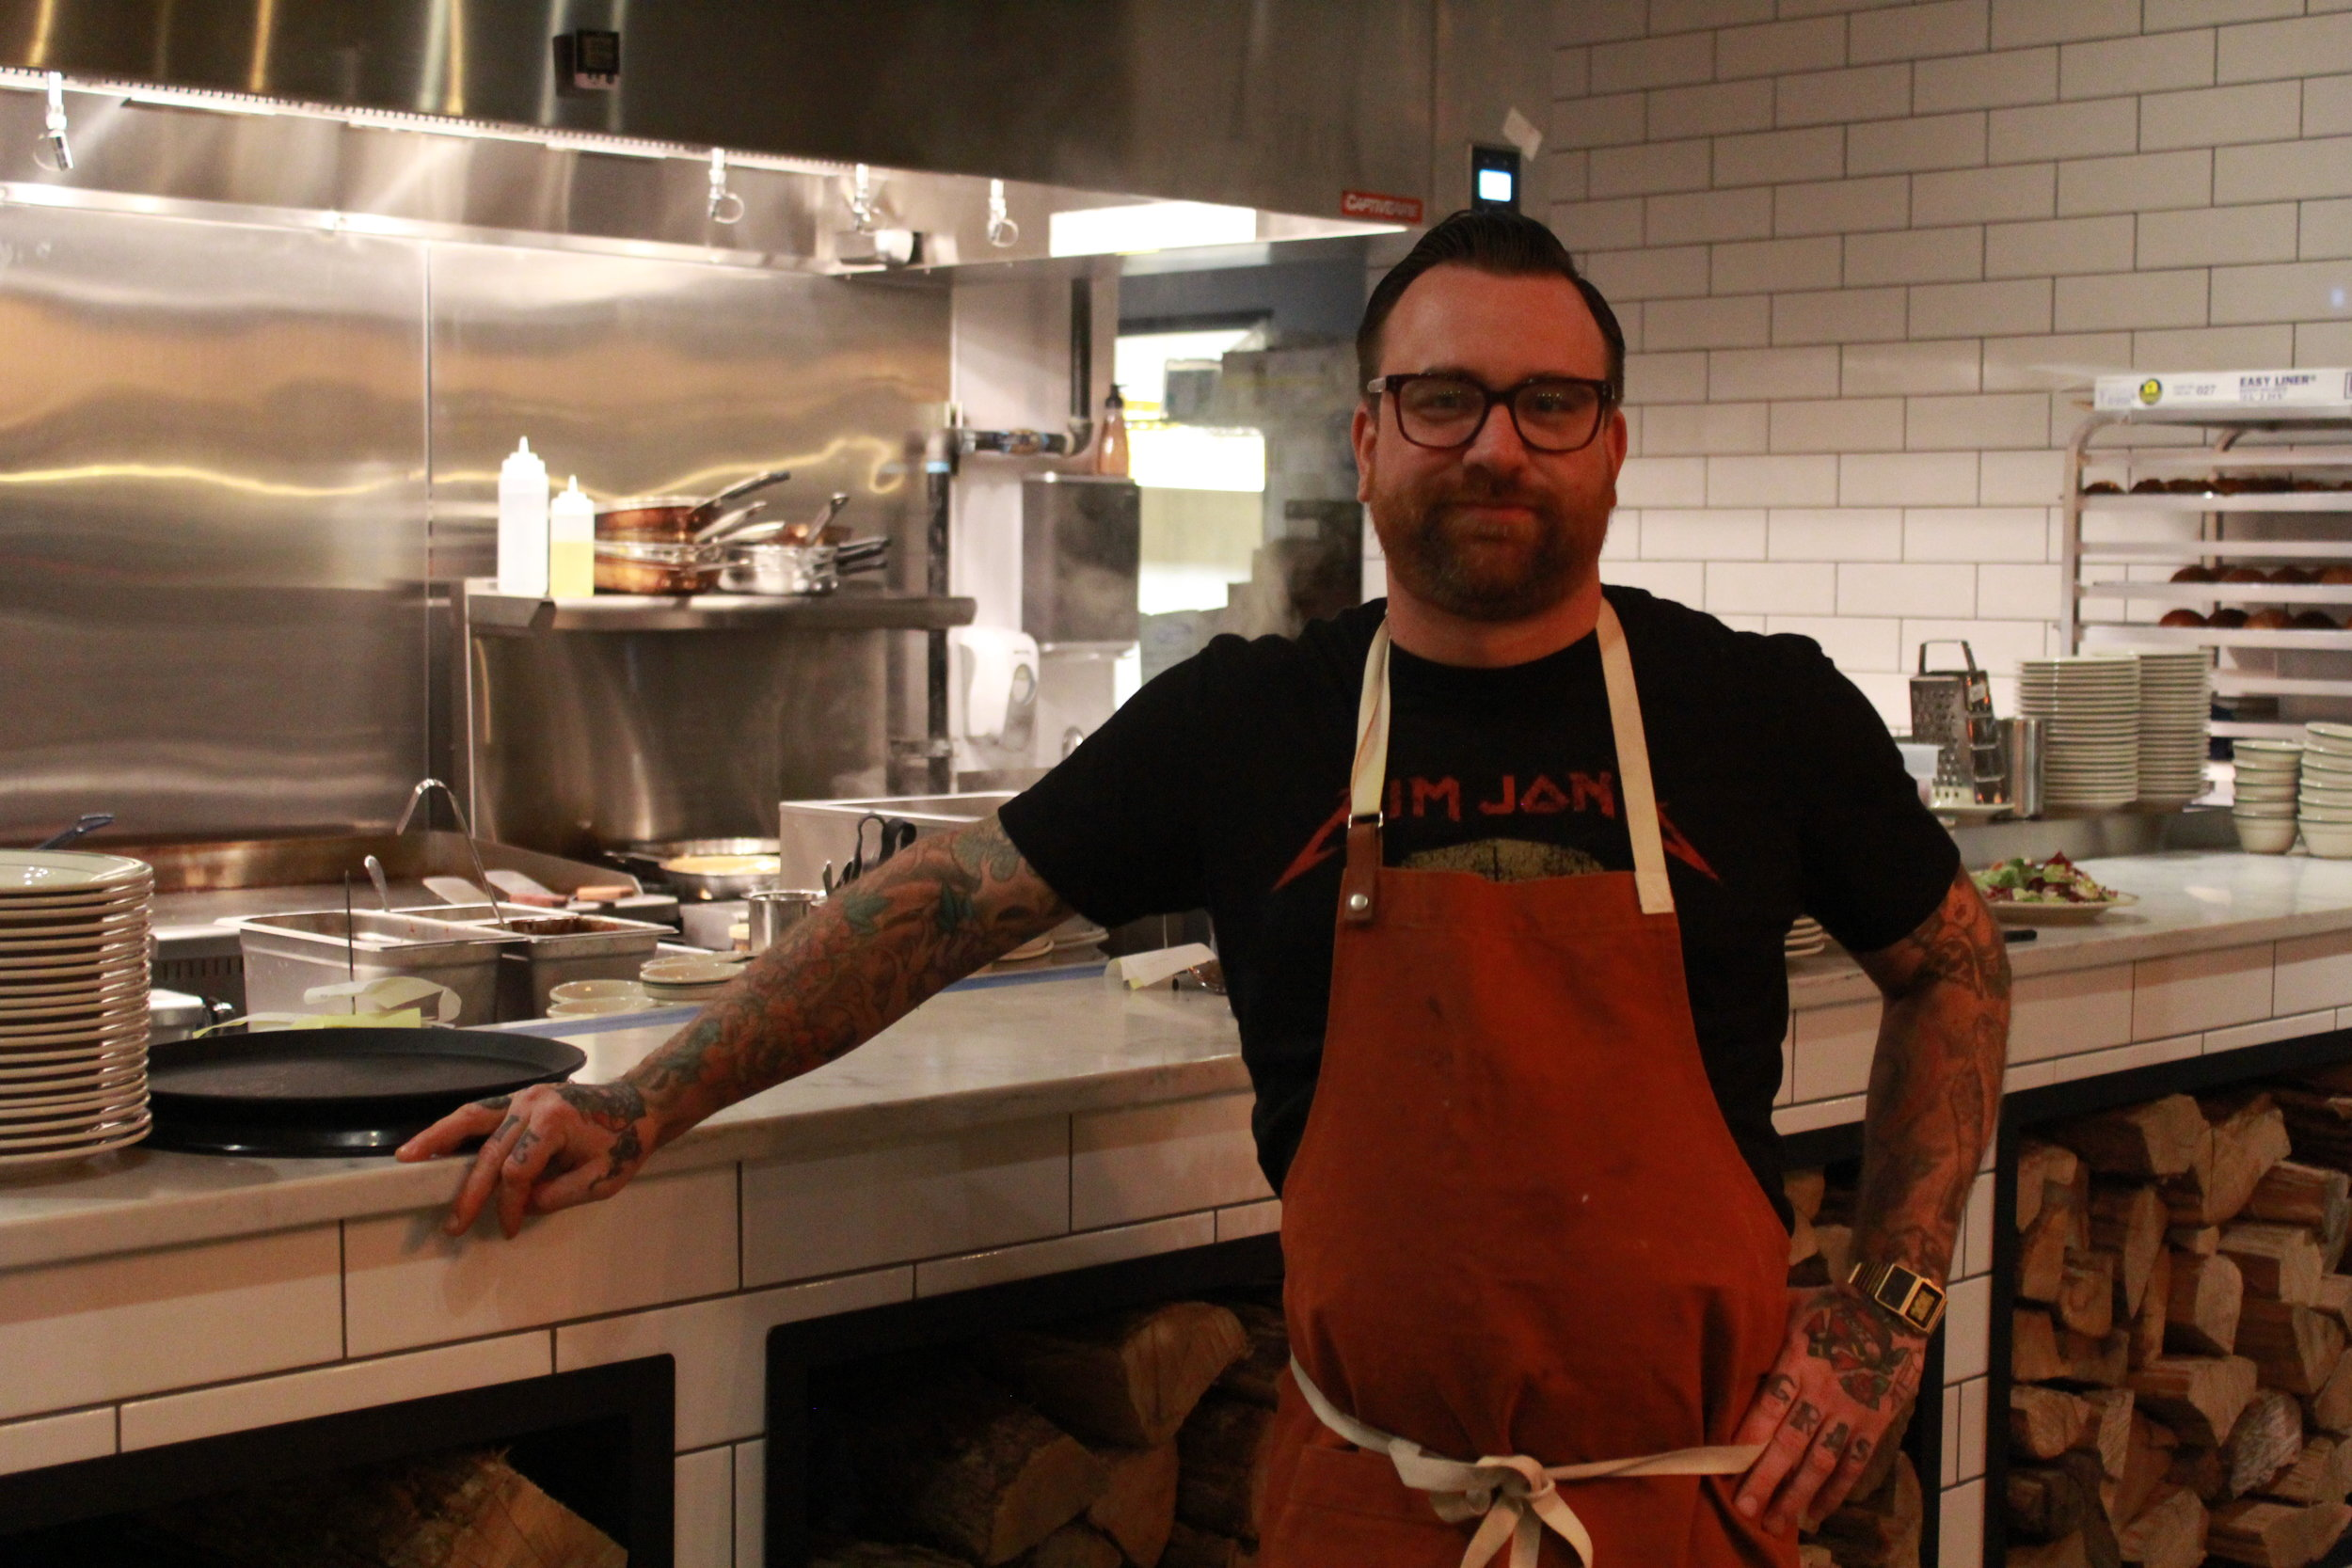 CHEF BJ SMITH OF SMOKEHOUSE PROVISIONS IN VANCOUVER, WA